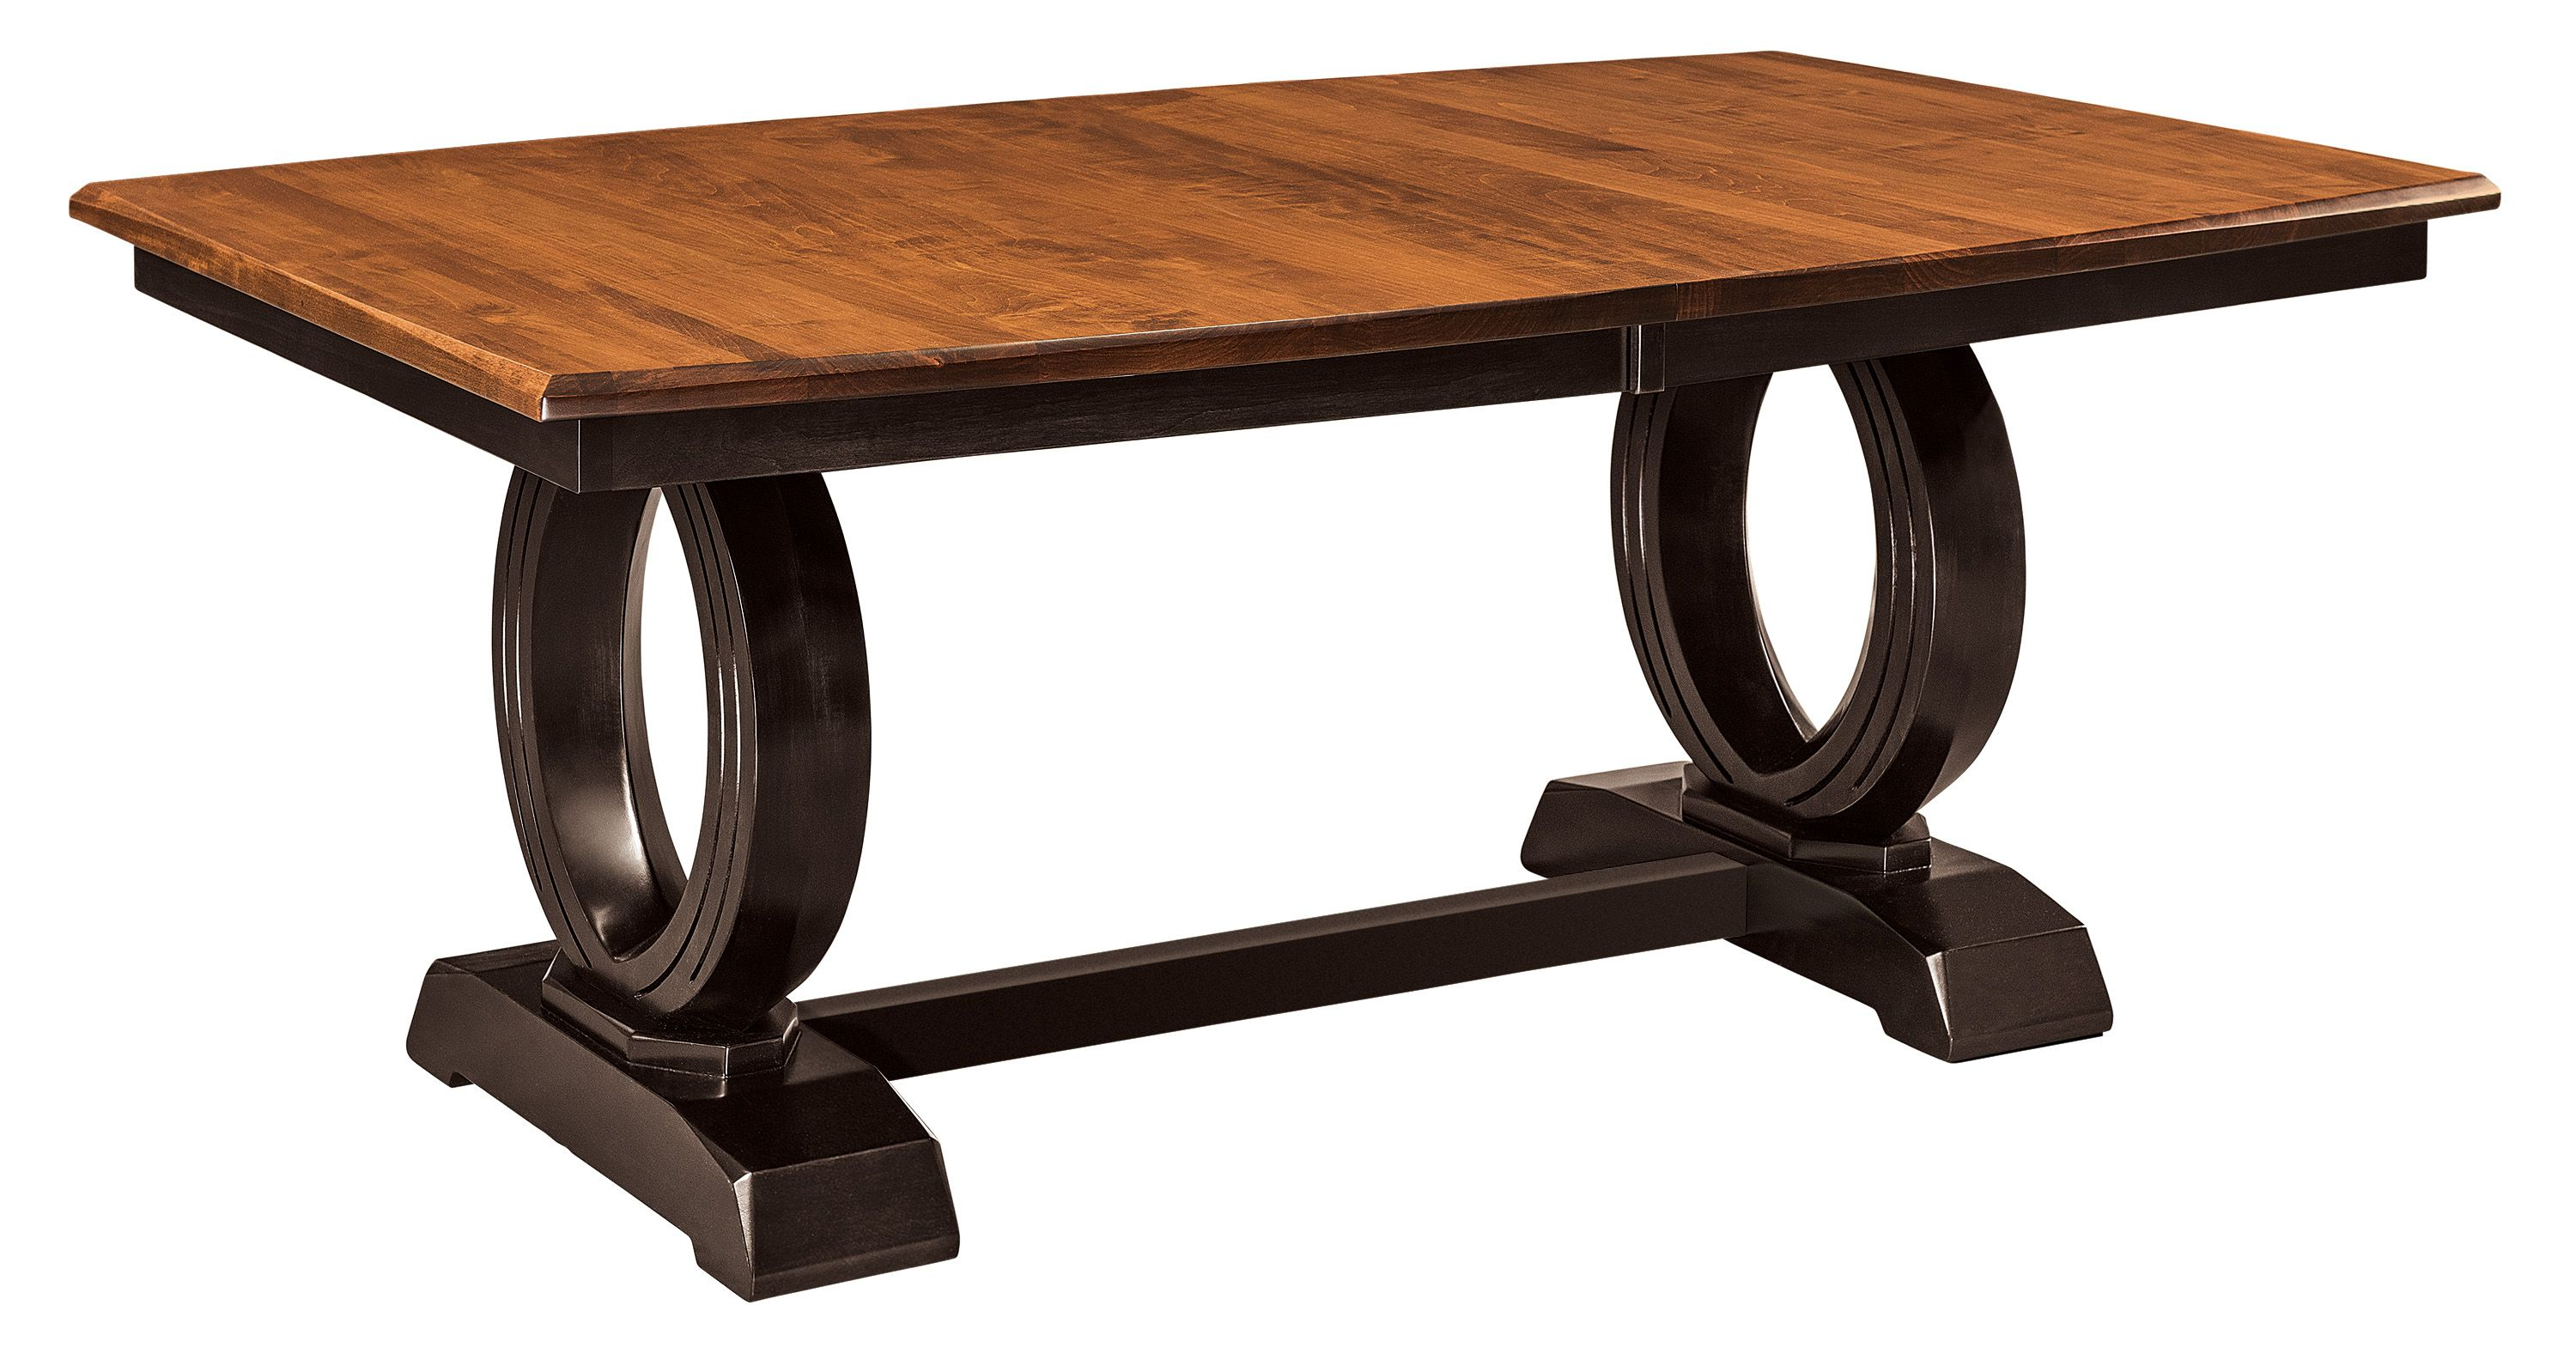 amish tables saratoga table is made of american hardwoods our dining tables are available in different wood species stains and sizes